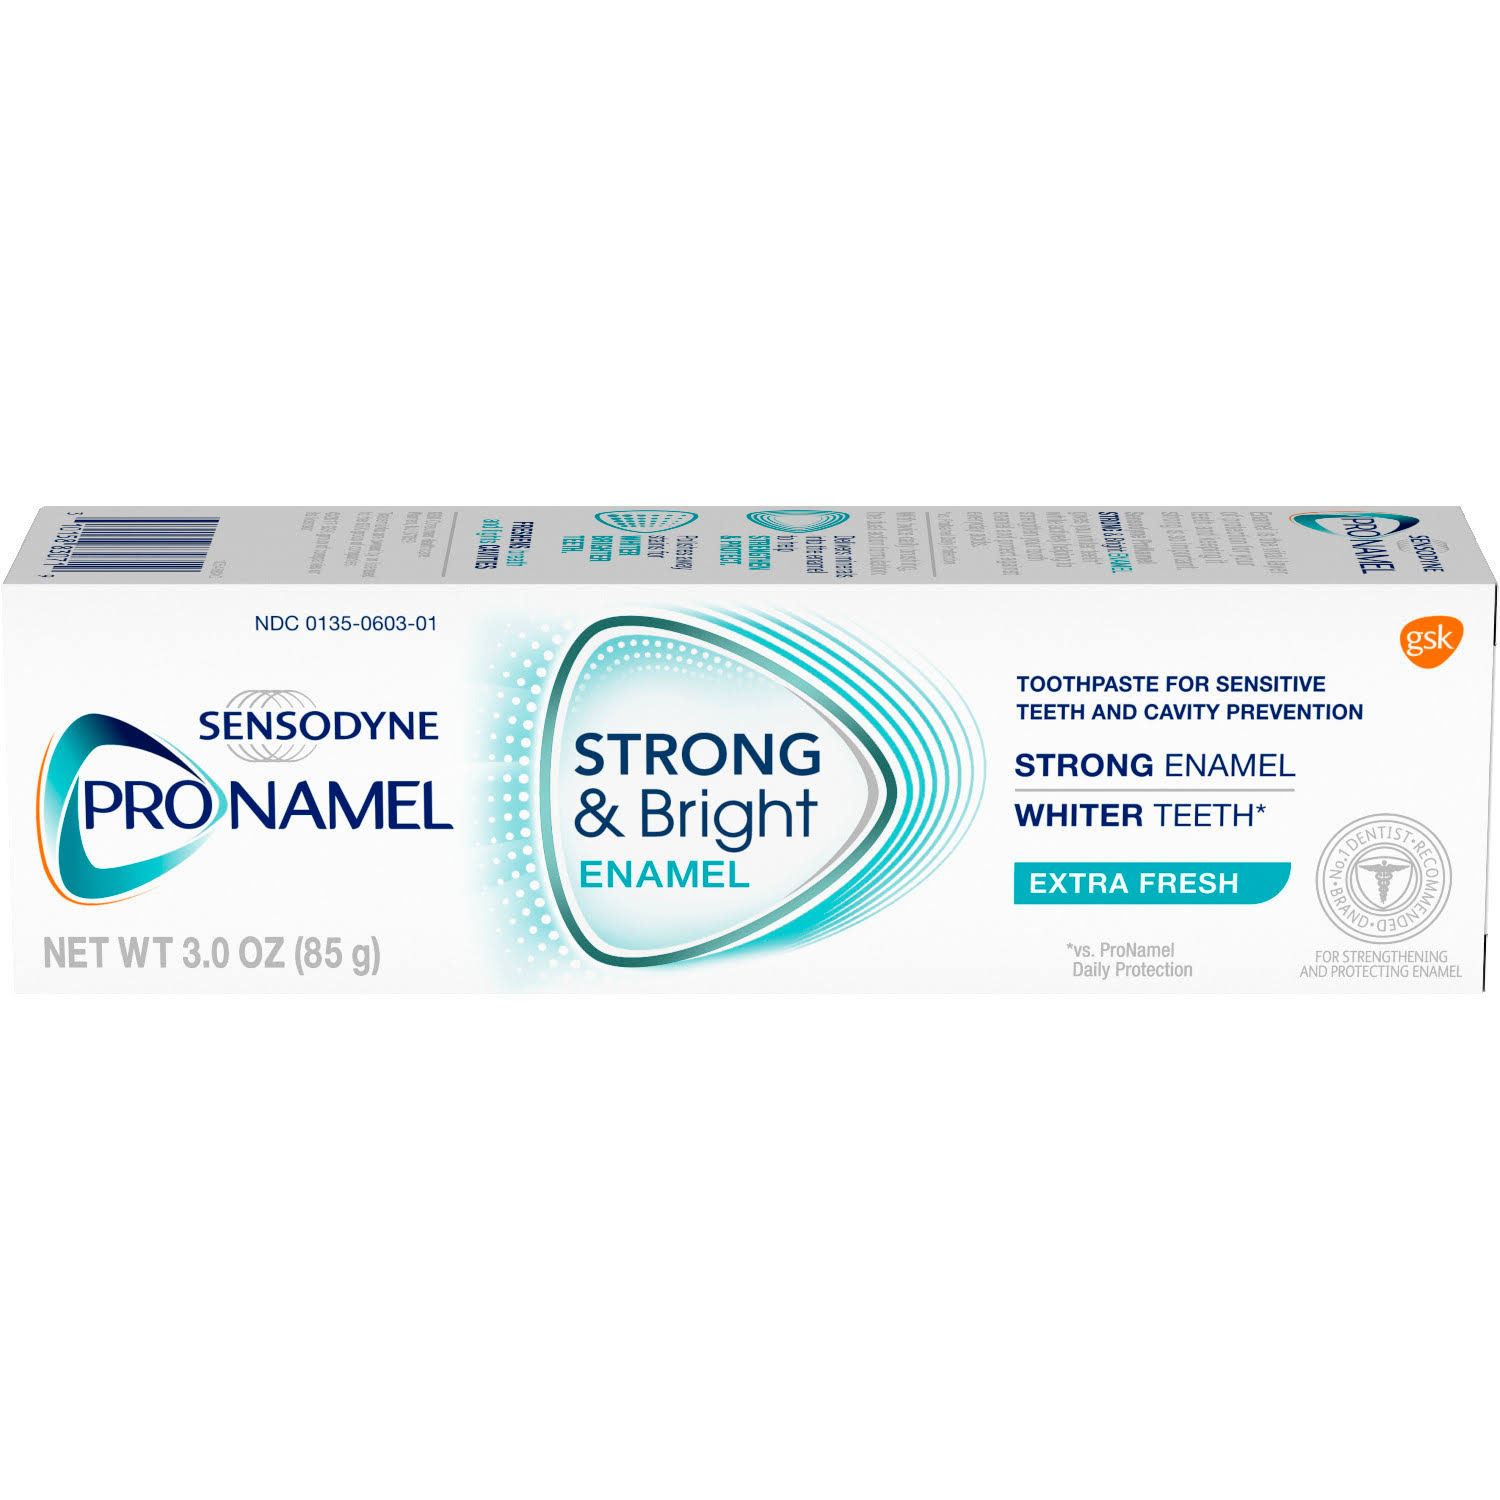 Sensodyne Pronamel Strong and Bright Extra Fresh Toothpaste - 3oz